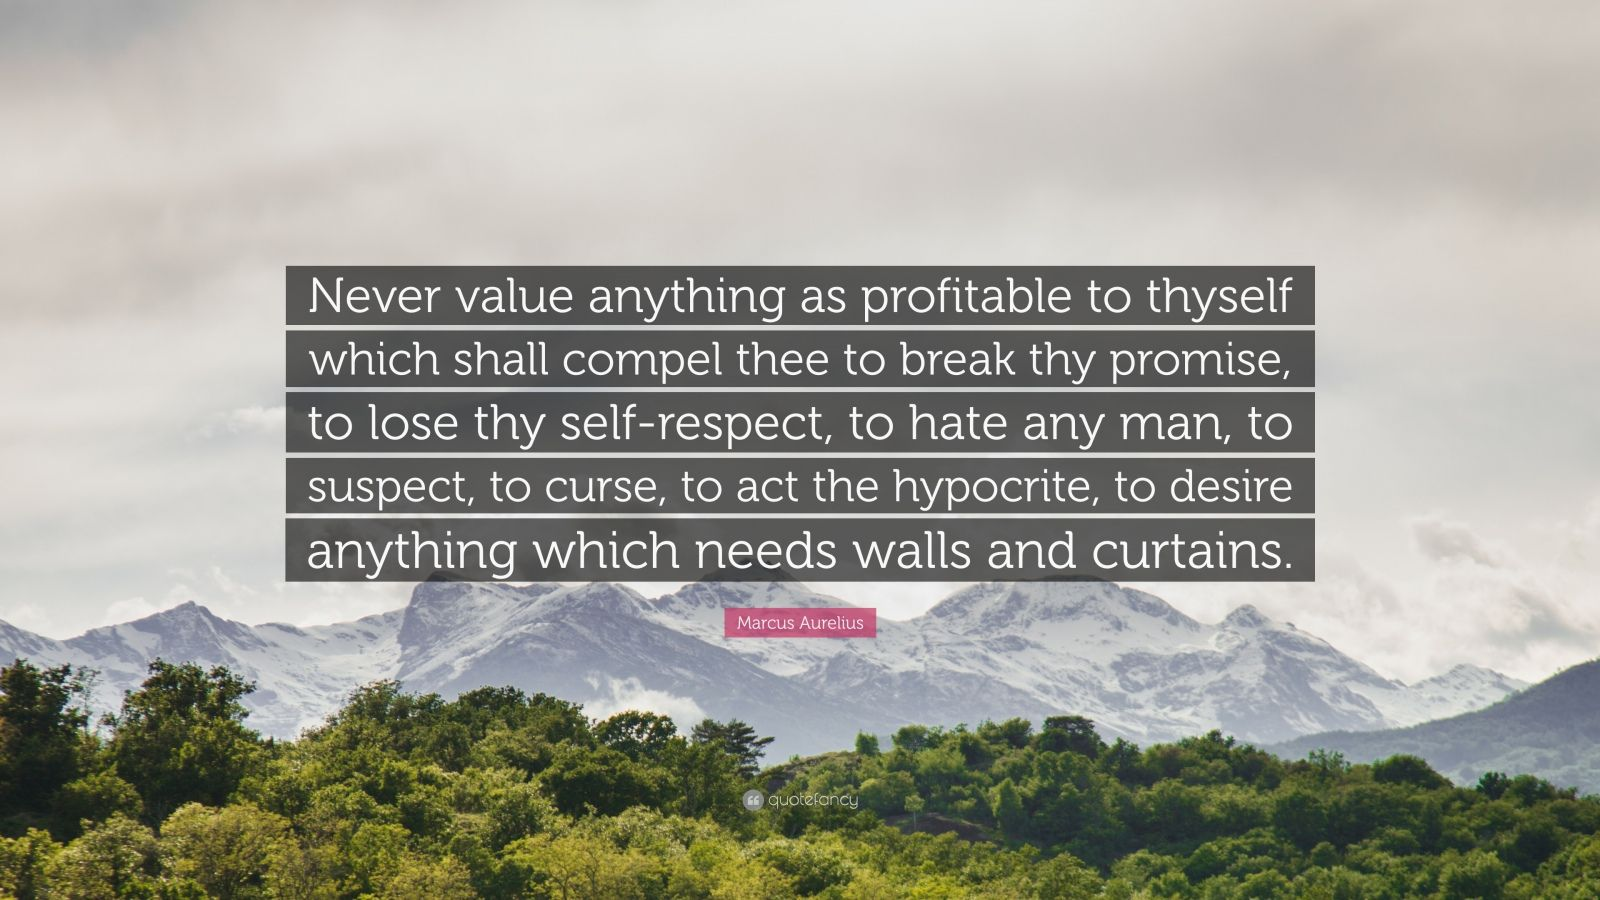 "Marcus Aurelius Quote: ""Never value anything as profitable to thyself which shall compel thee to break thy promise, to lose thy self-respect, to hate any man, to suspect, to curse, to act the hypocrite, to desire anything which needs walls and curtains."""